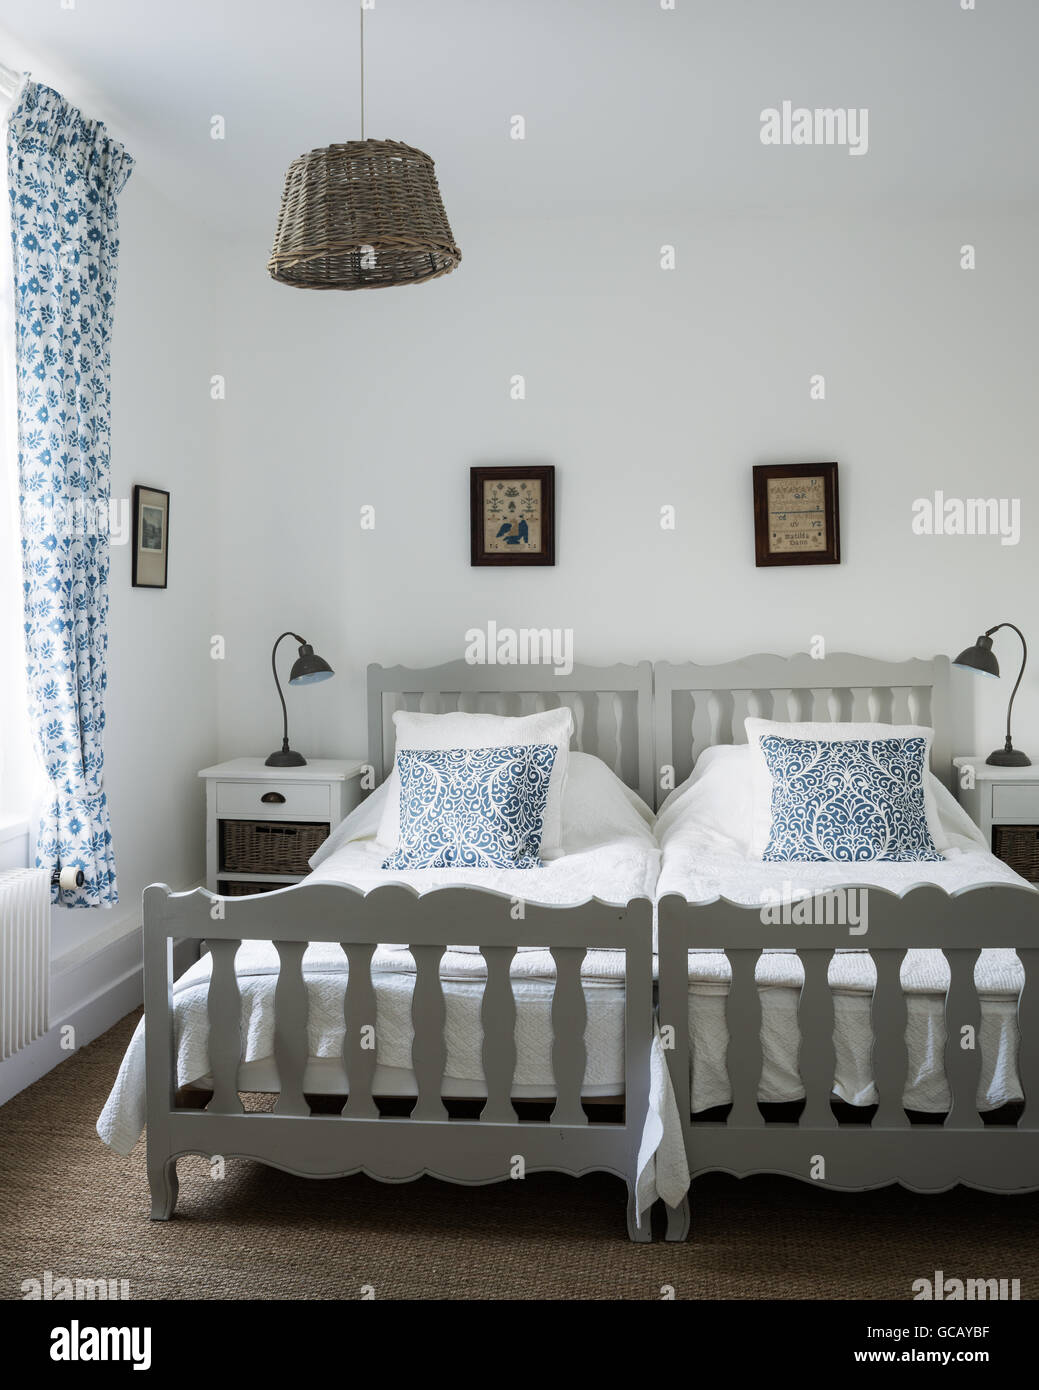 Twin Beds In Guest Room With Swedish Block Print Curtains And Basket Stock Photo Alamy